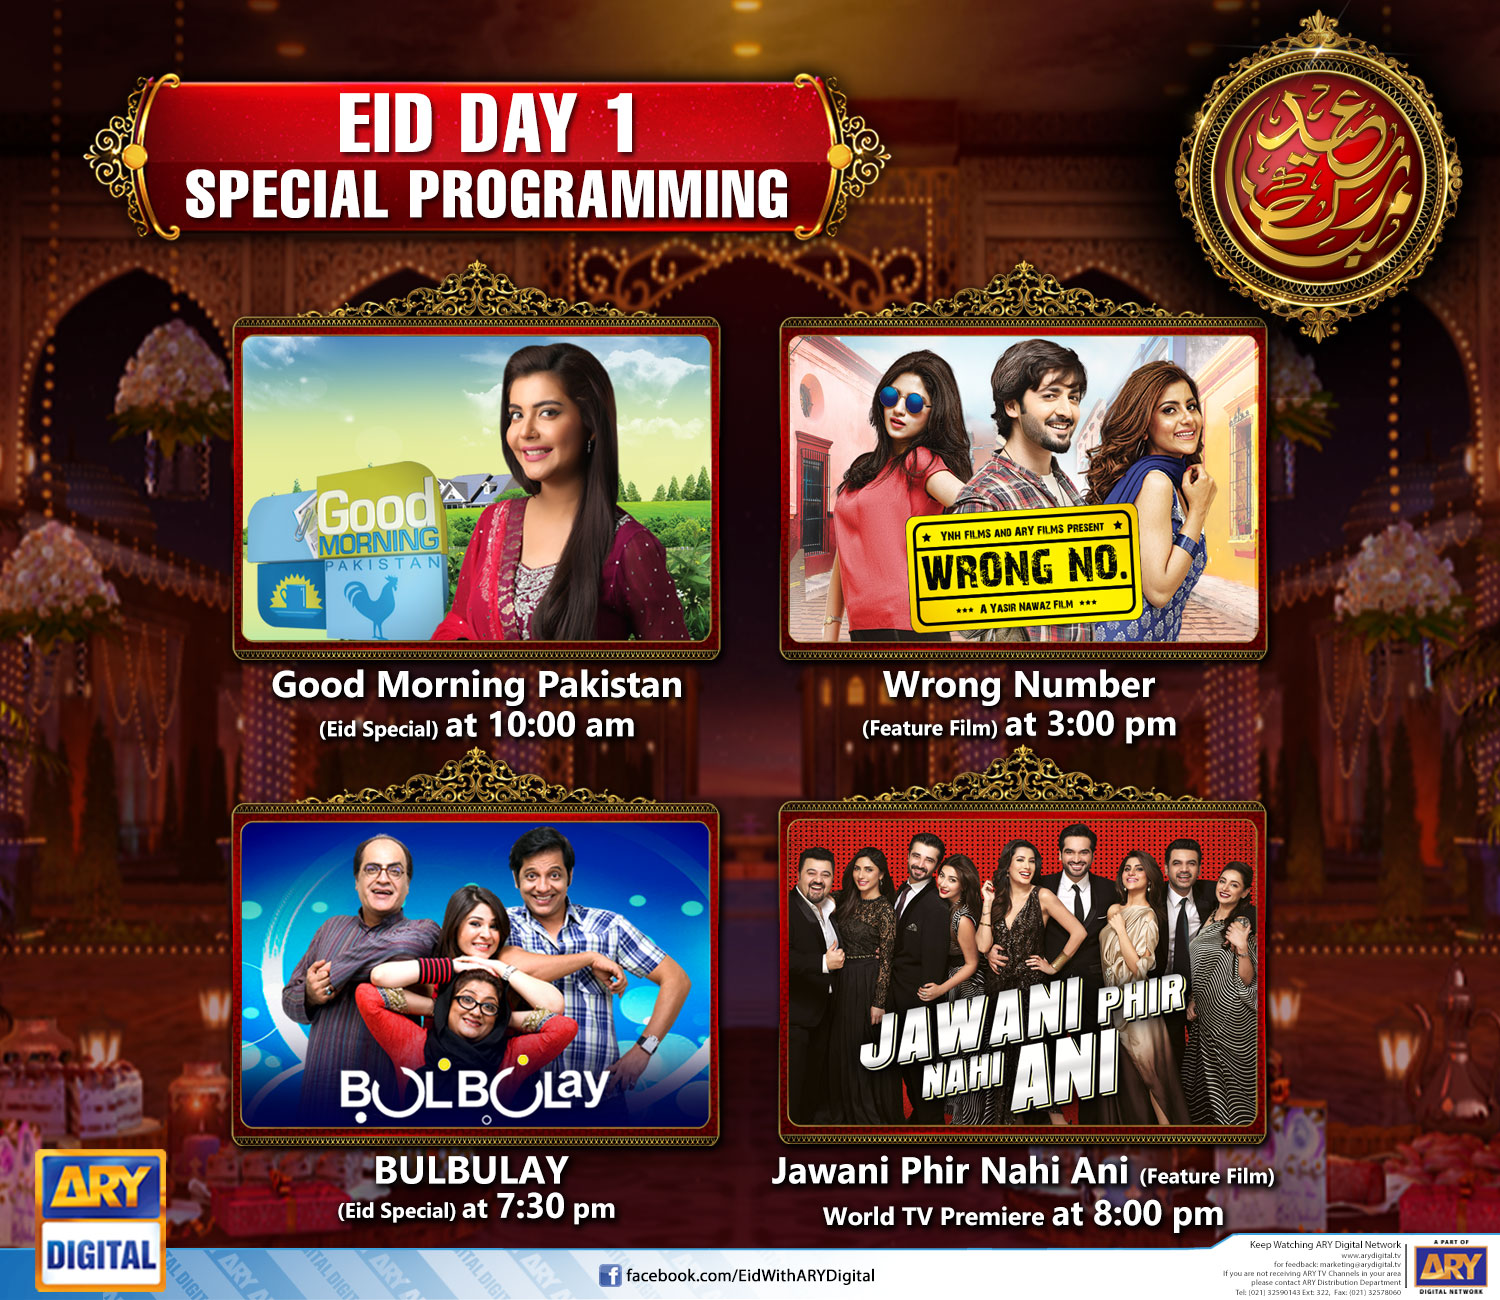 [Press Release] ARY Digital and ARY Zindagi brings exciting programs for Eid 2016 (1)